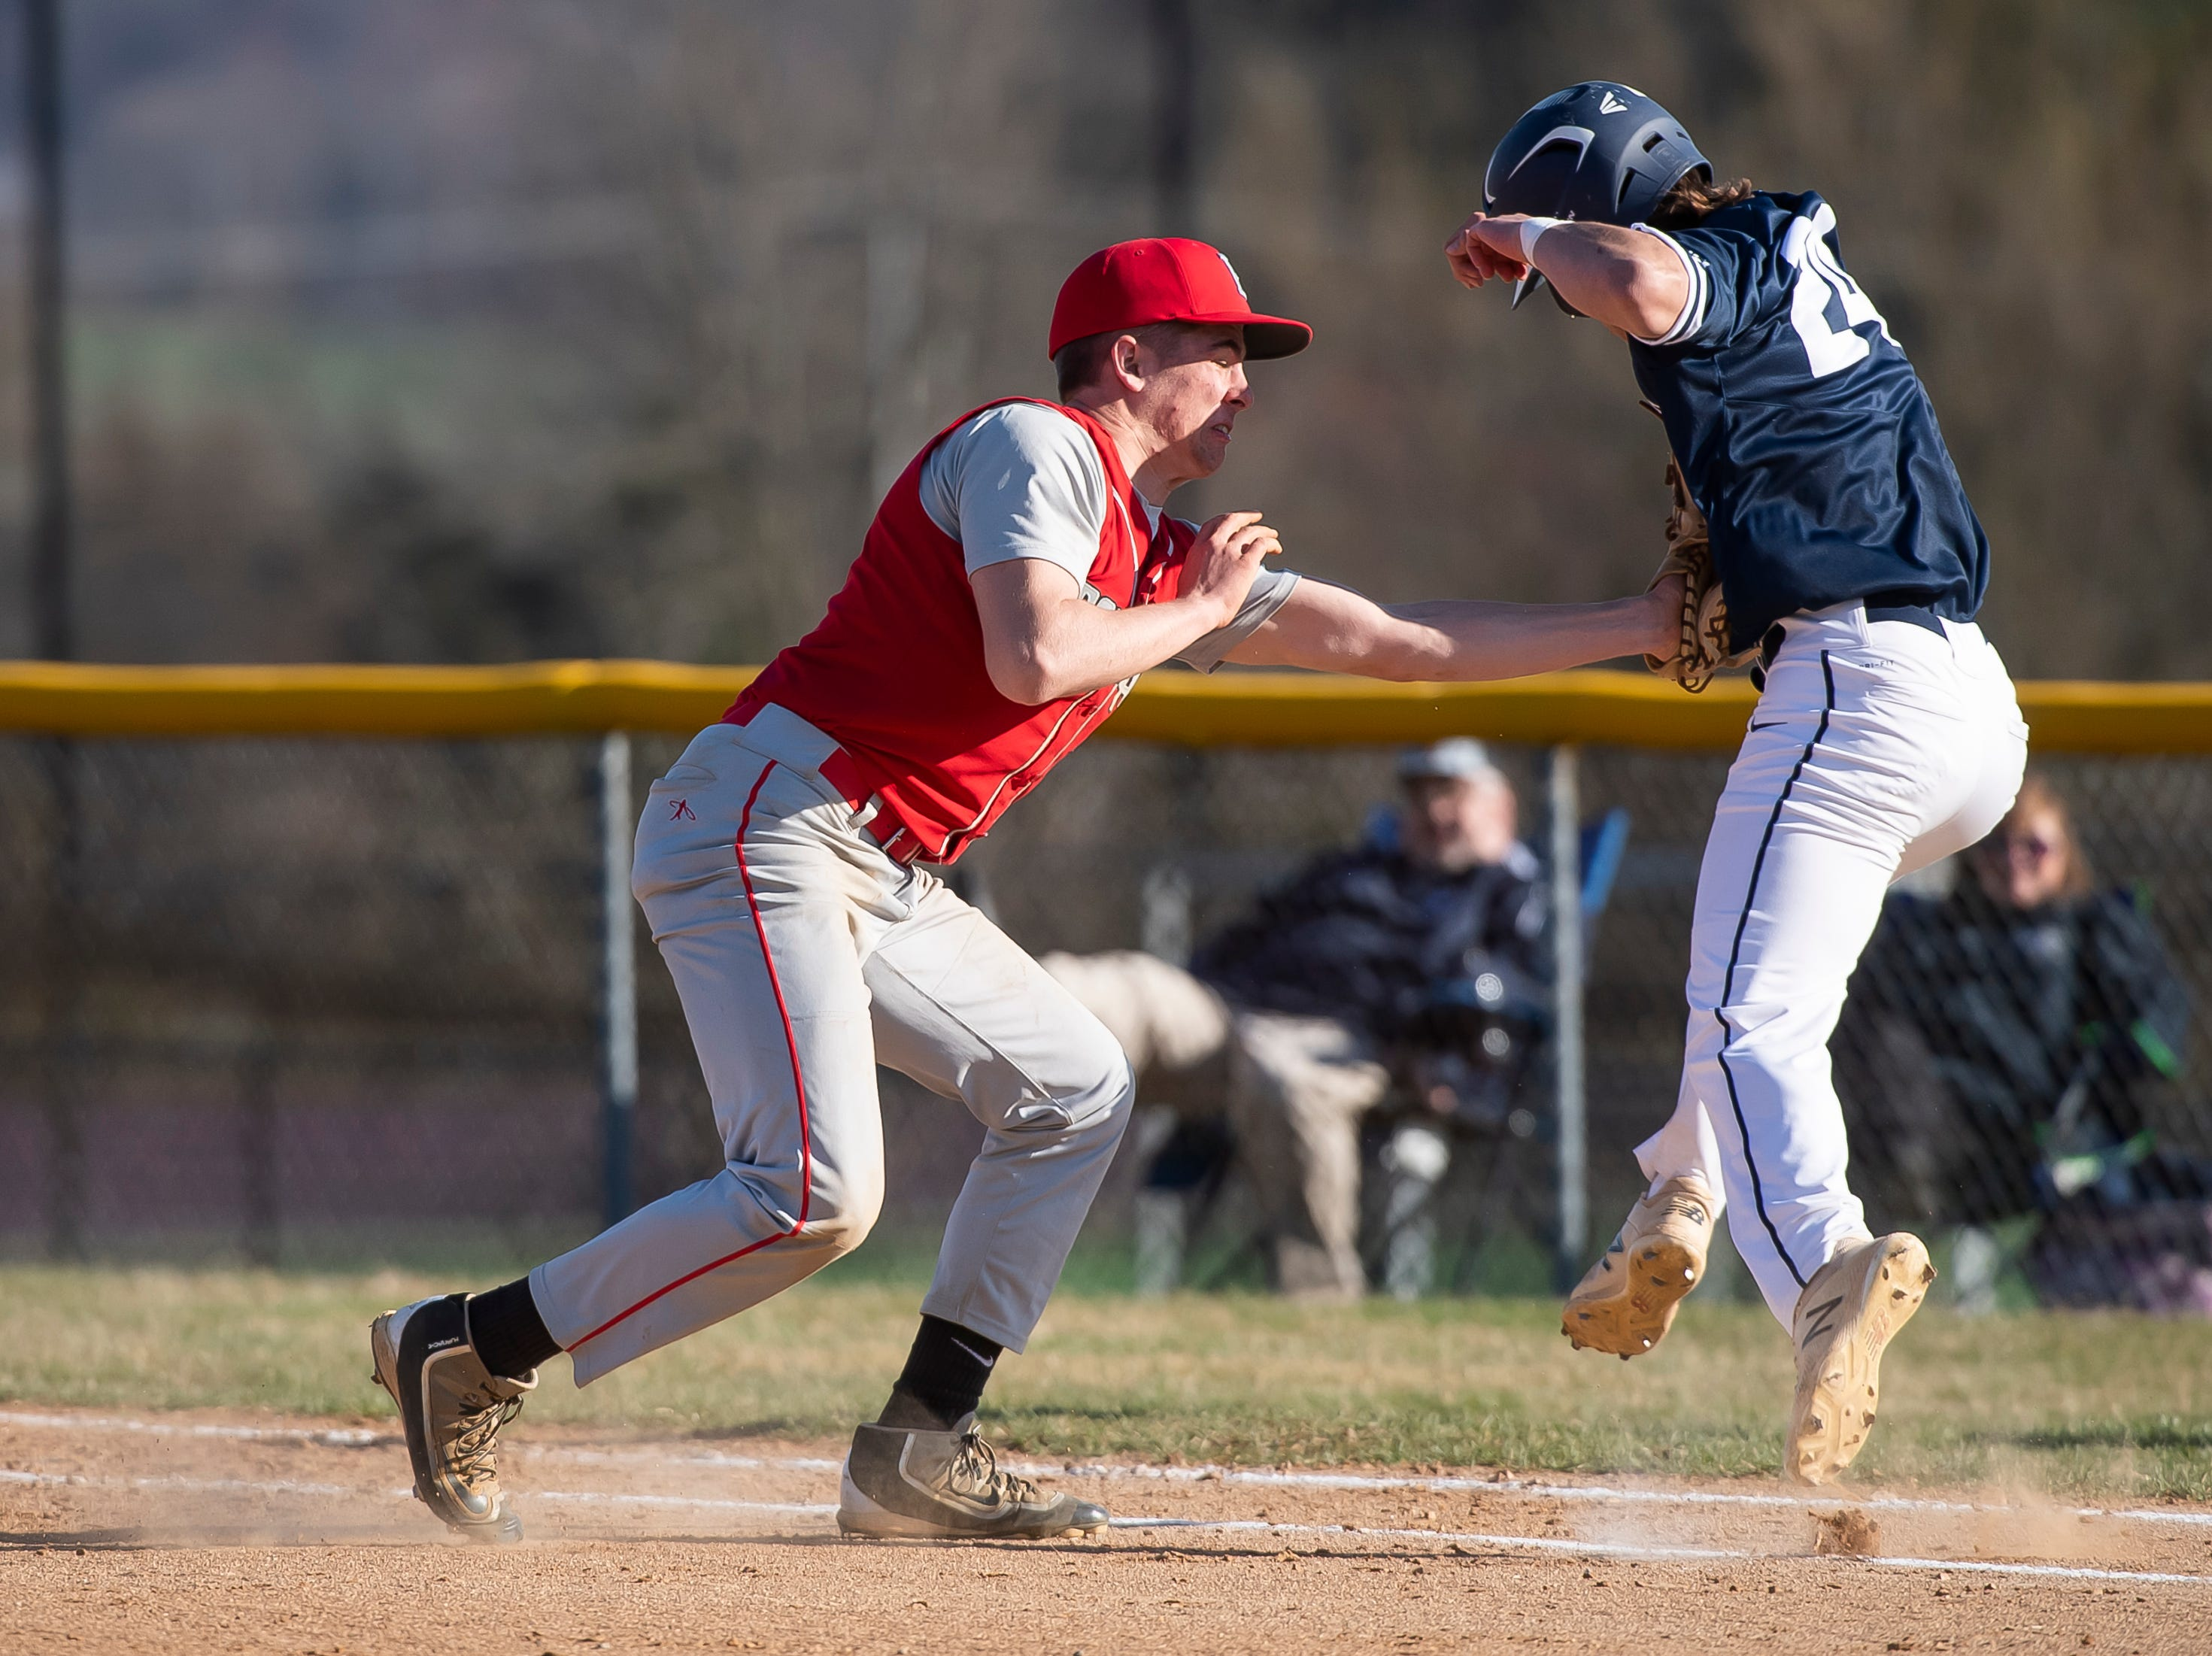 Bermudian Springs first baseman Nate McCollum tags out West York's Blaise Tanner during a YAIAA baseball game on Wednesday, April 3, 2019. The Eagles fell 14-11.